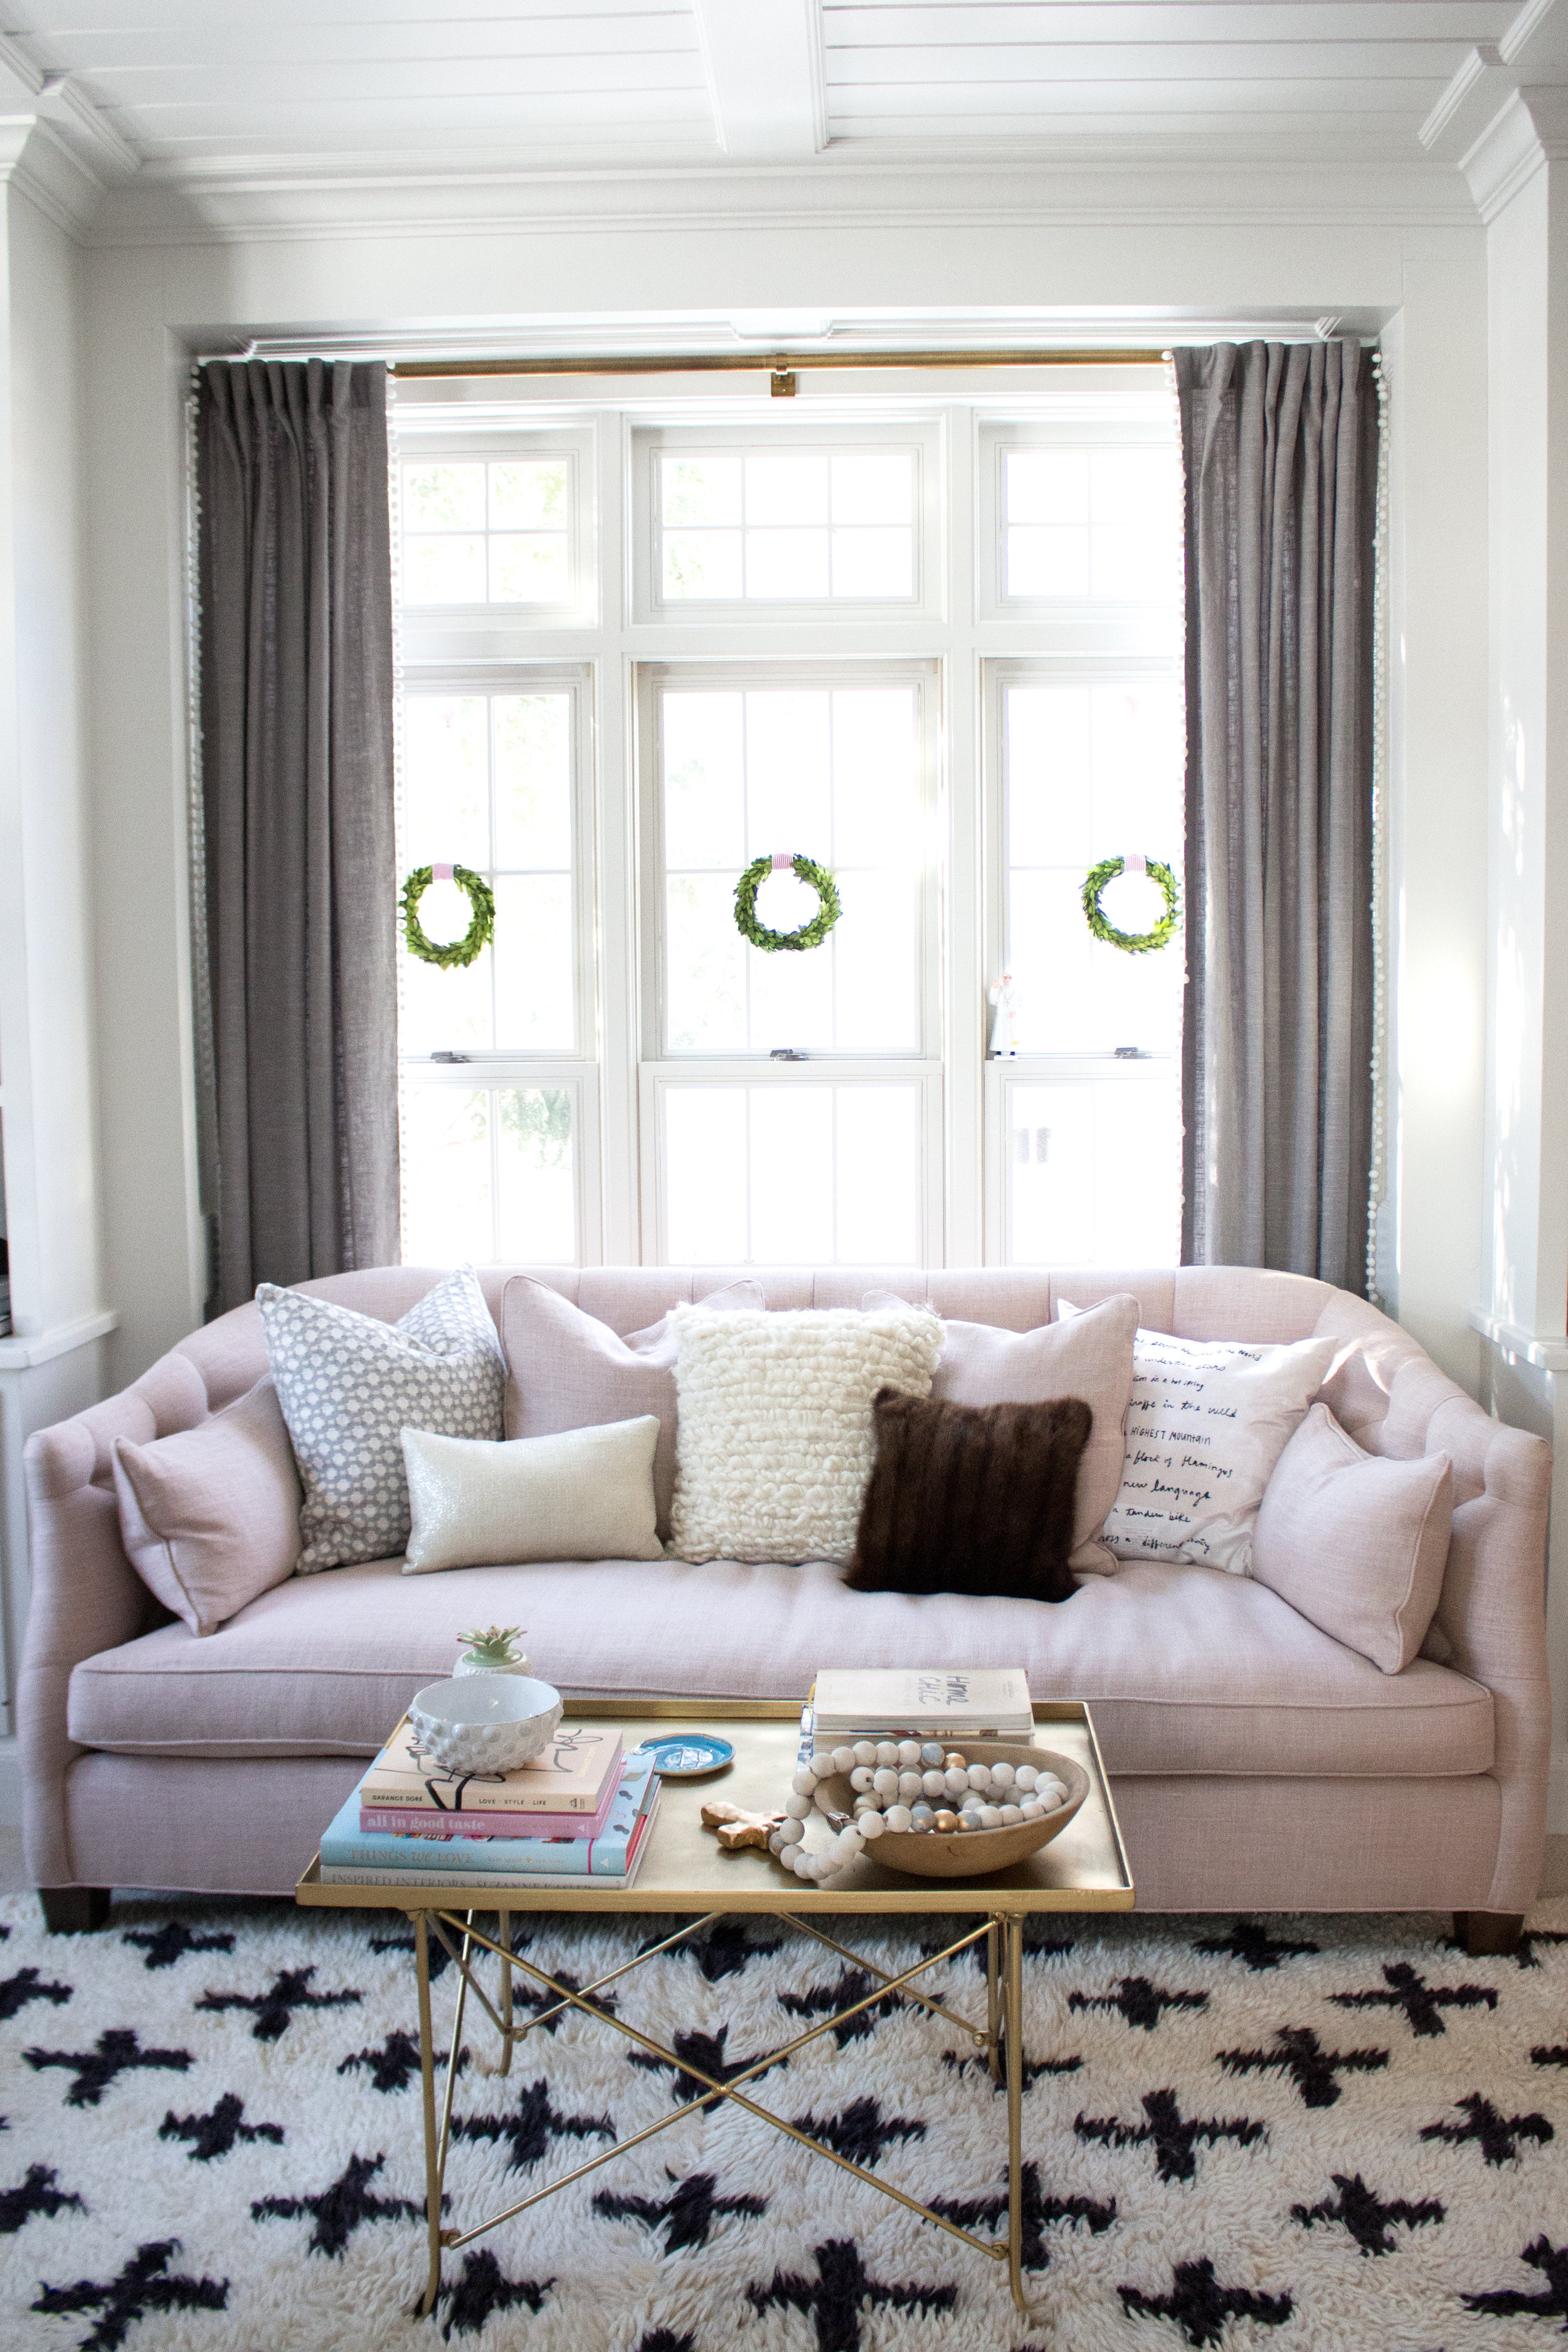 pink couch 2.jpg